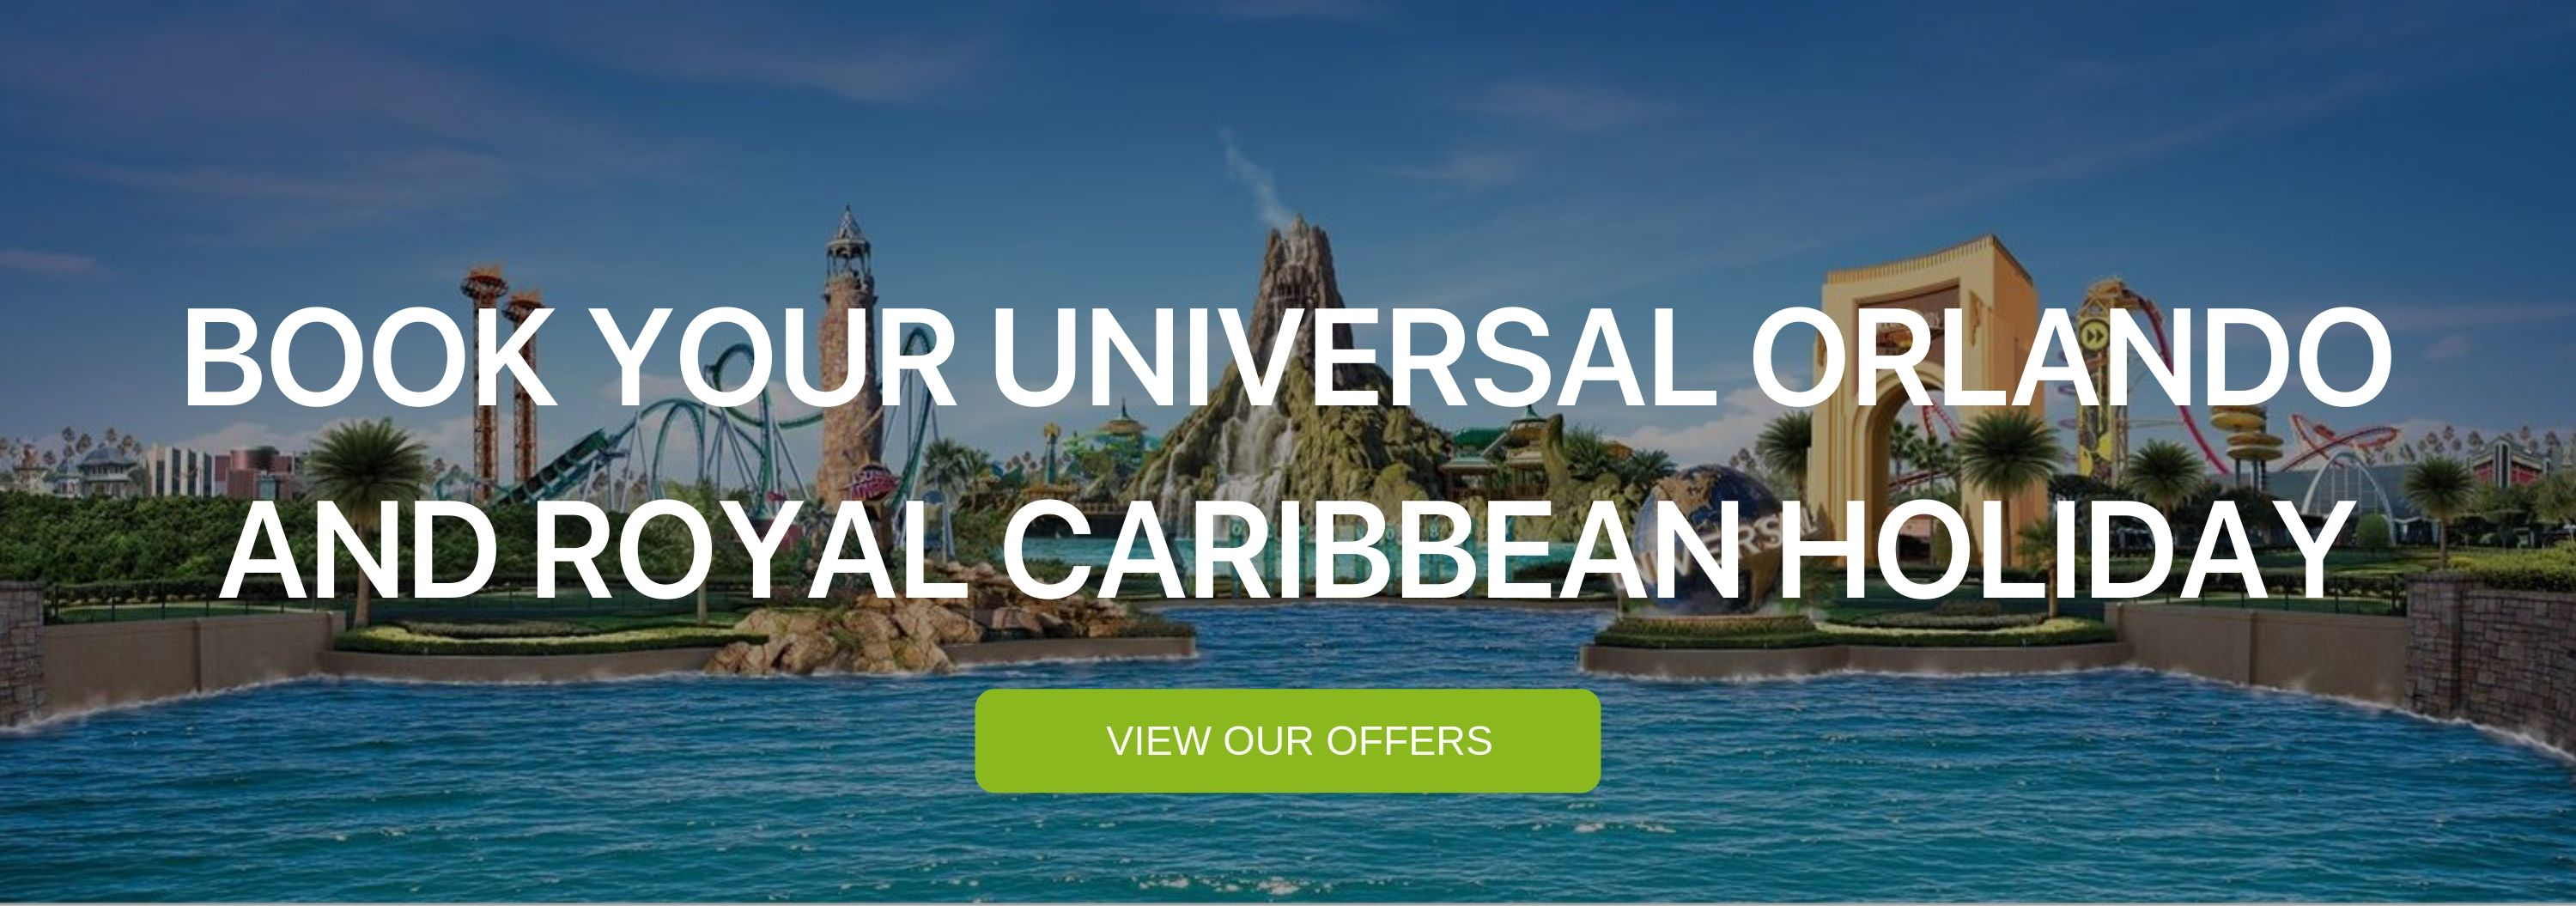 """ads """"Book your Universal Orlando And Royal Caribbean Holiday"""""""